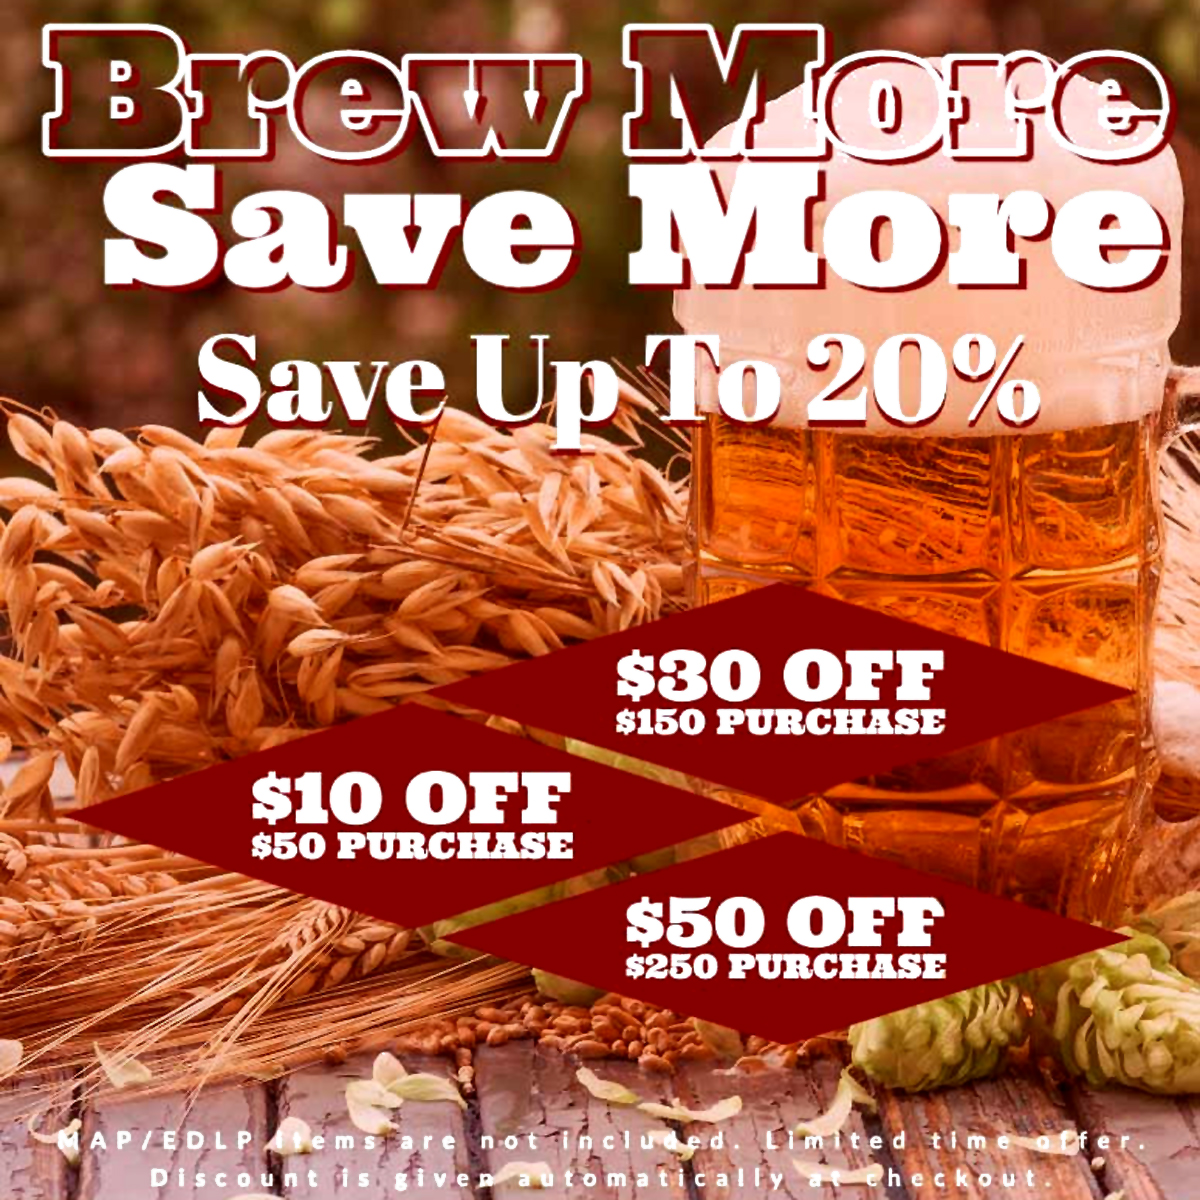 Adventures In Homebrewing Save $50 On Your Purchase and Get FREE SHIPPING at Aventures in Homebrewing With This Promotion Coupon Code